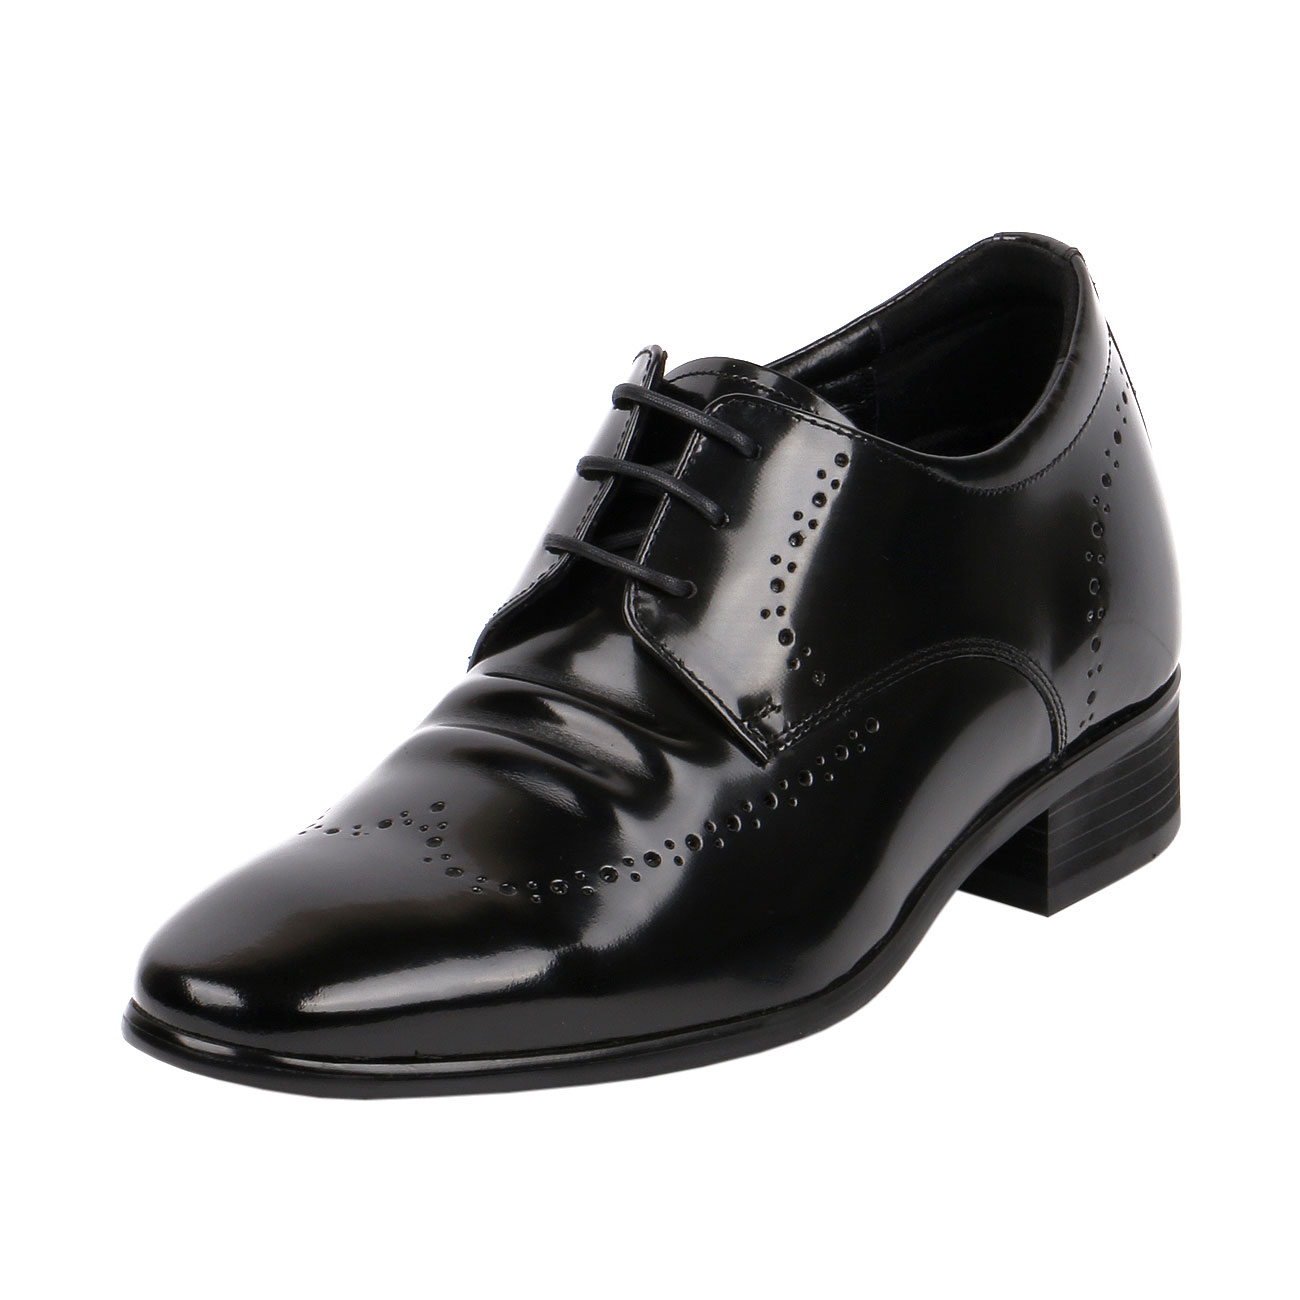 Fusion Wingtip Derby Style Decorative Punching Gentlemen Glossy Leather with Elongated Pointy JW501-1